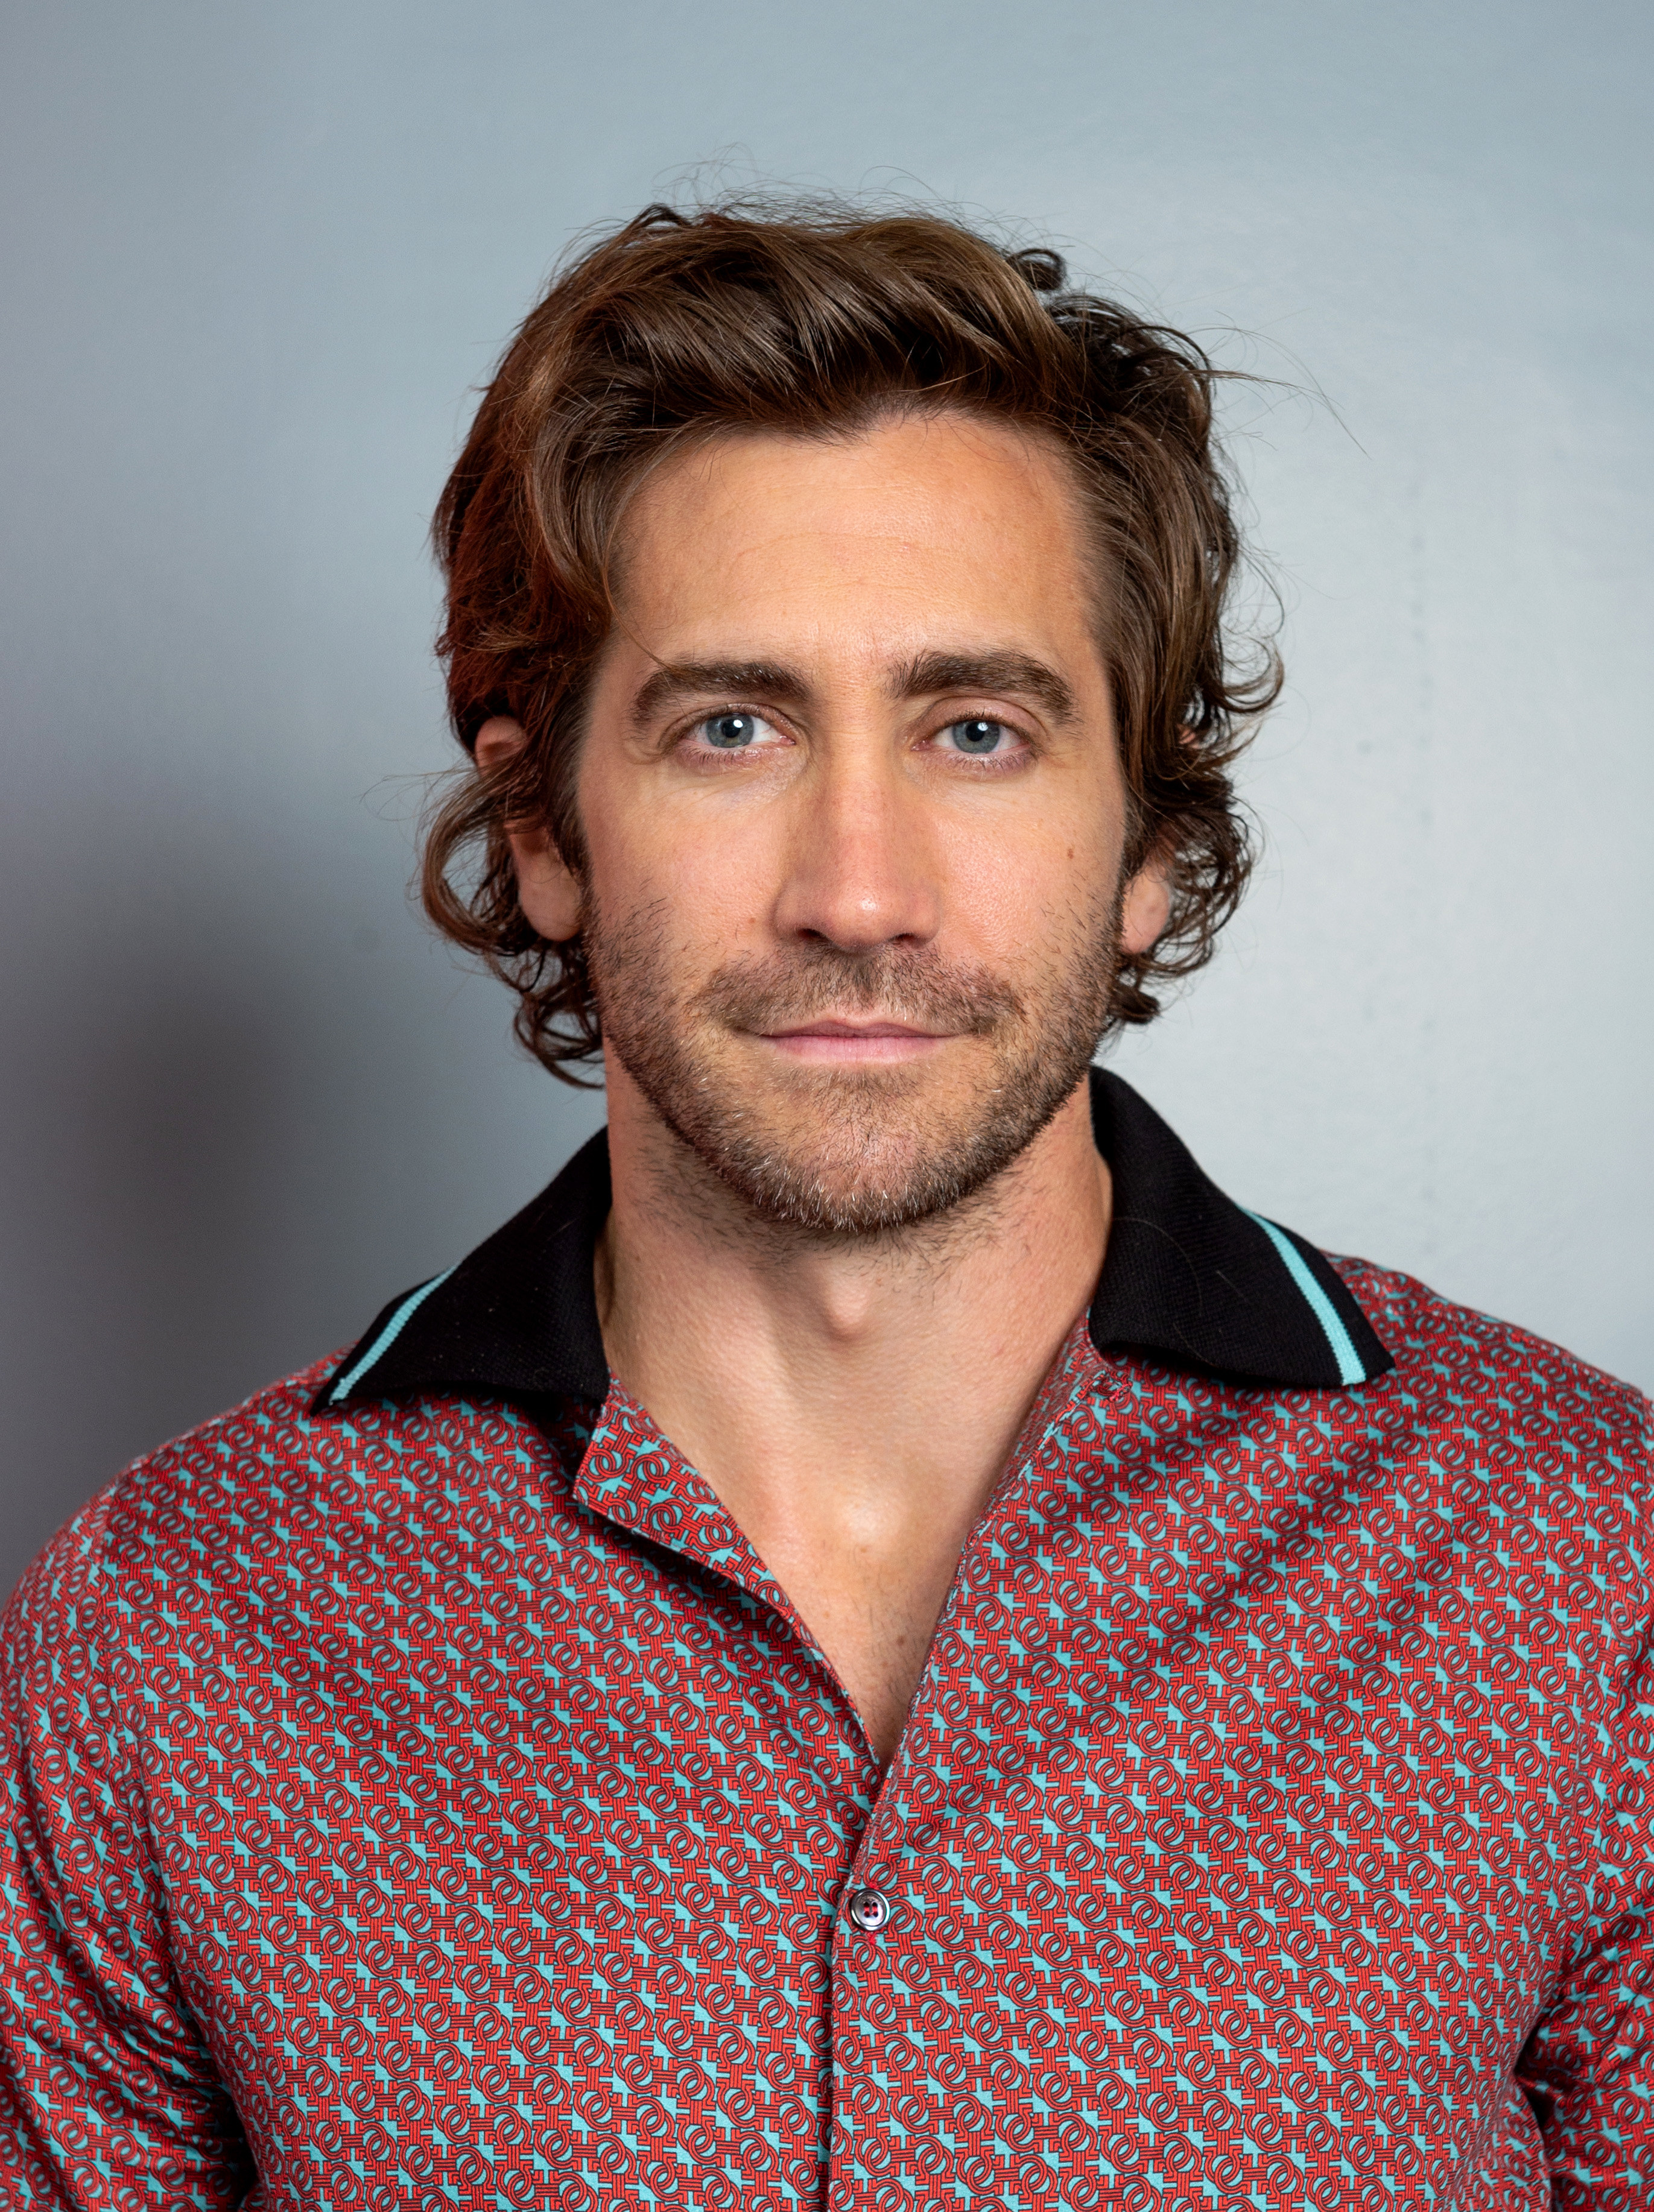 Gyllenhaal looks in the camera while wearing a collared button-down shirt